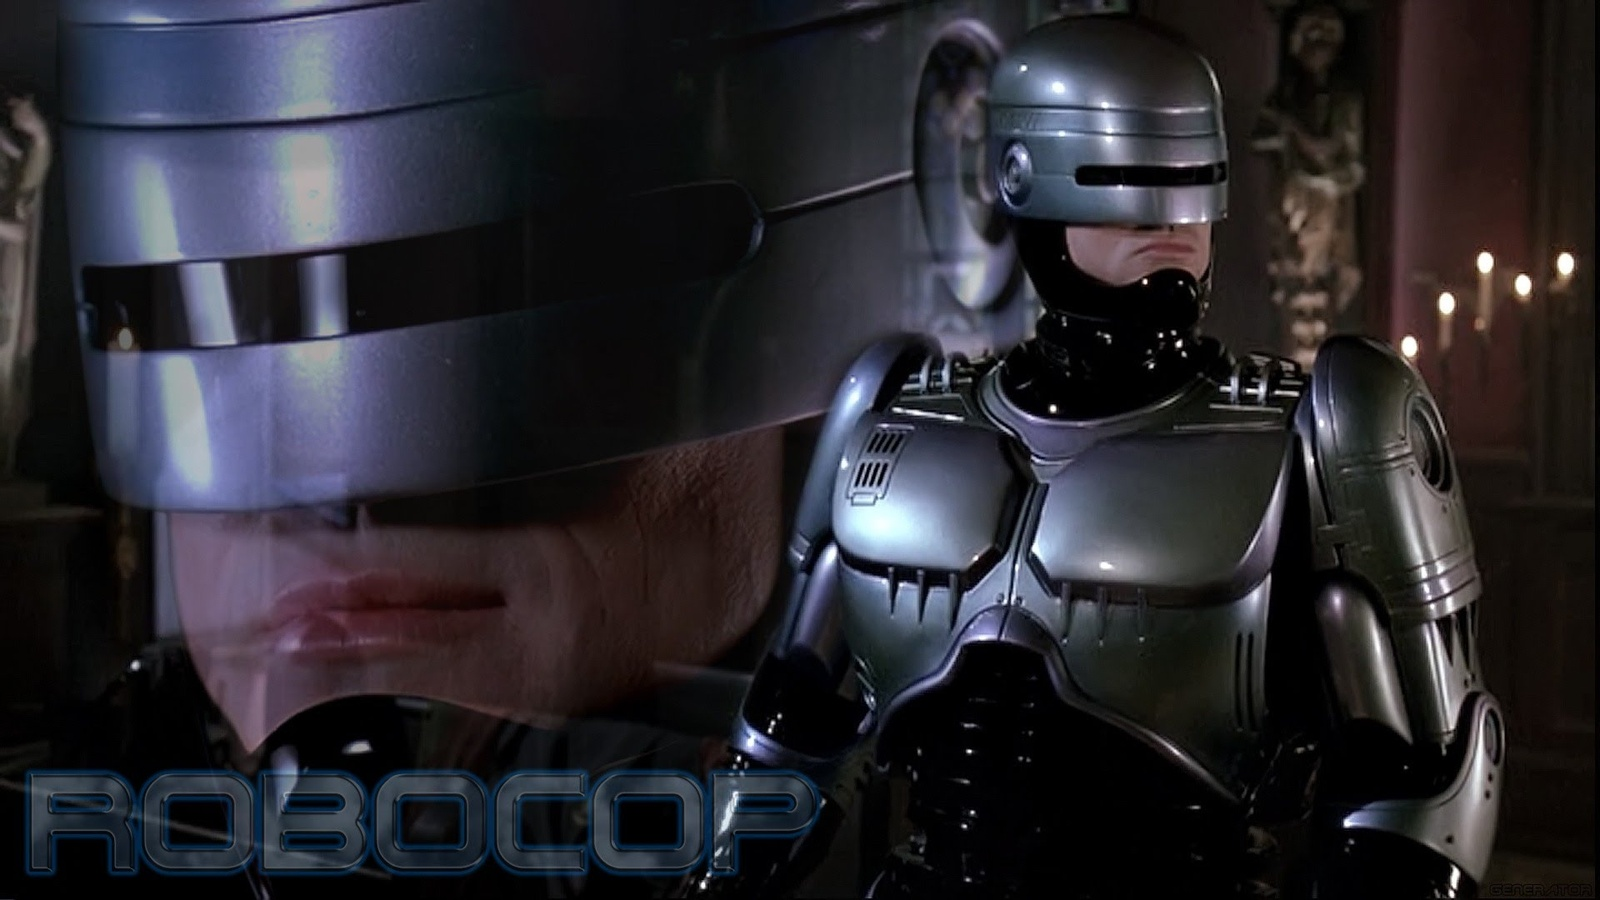 Робокоп/RoboCop background